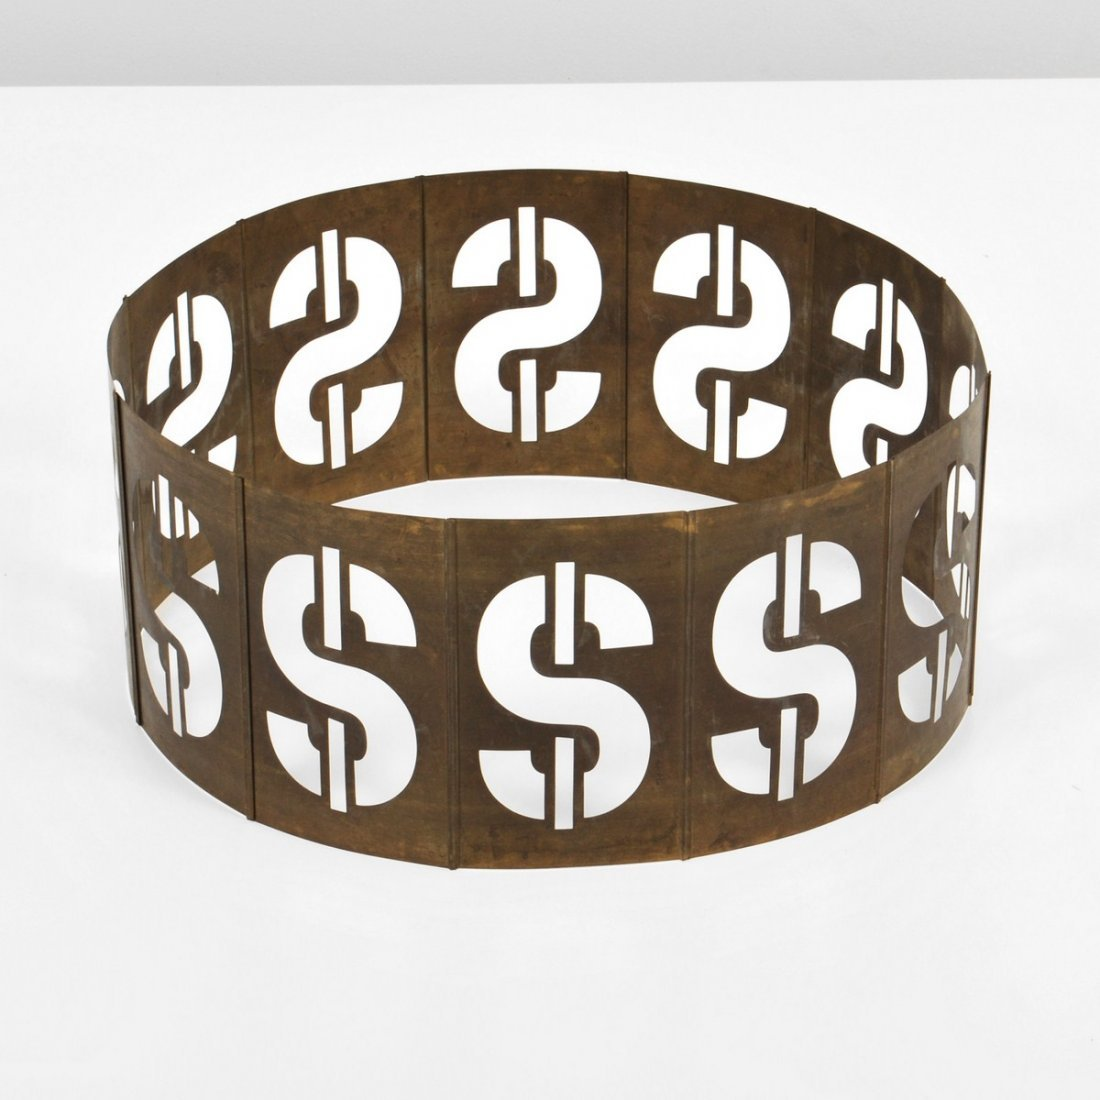 319: Signed Andy Warhol Dollar Sign Metal Sculpture